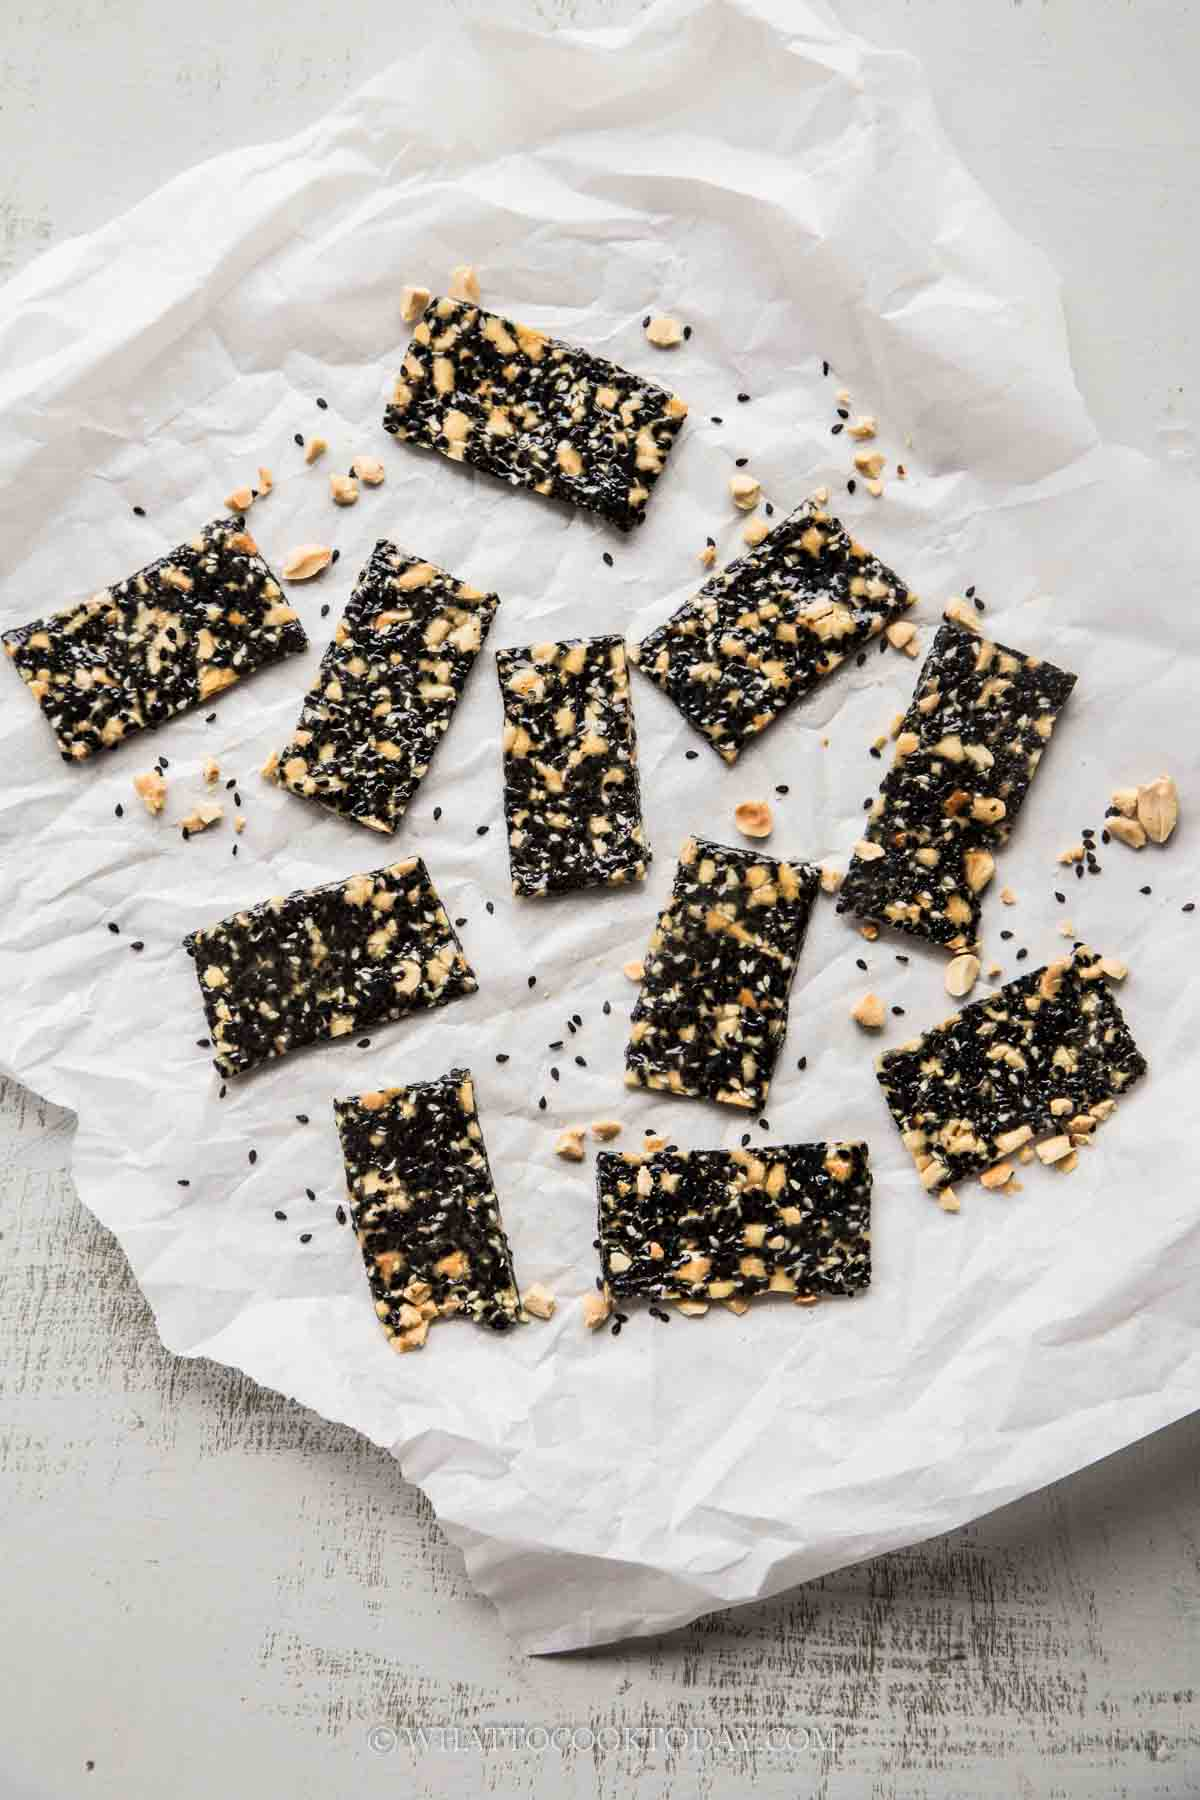 Easy Black Sesame Peanut Candy (Soft and Chewy)